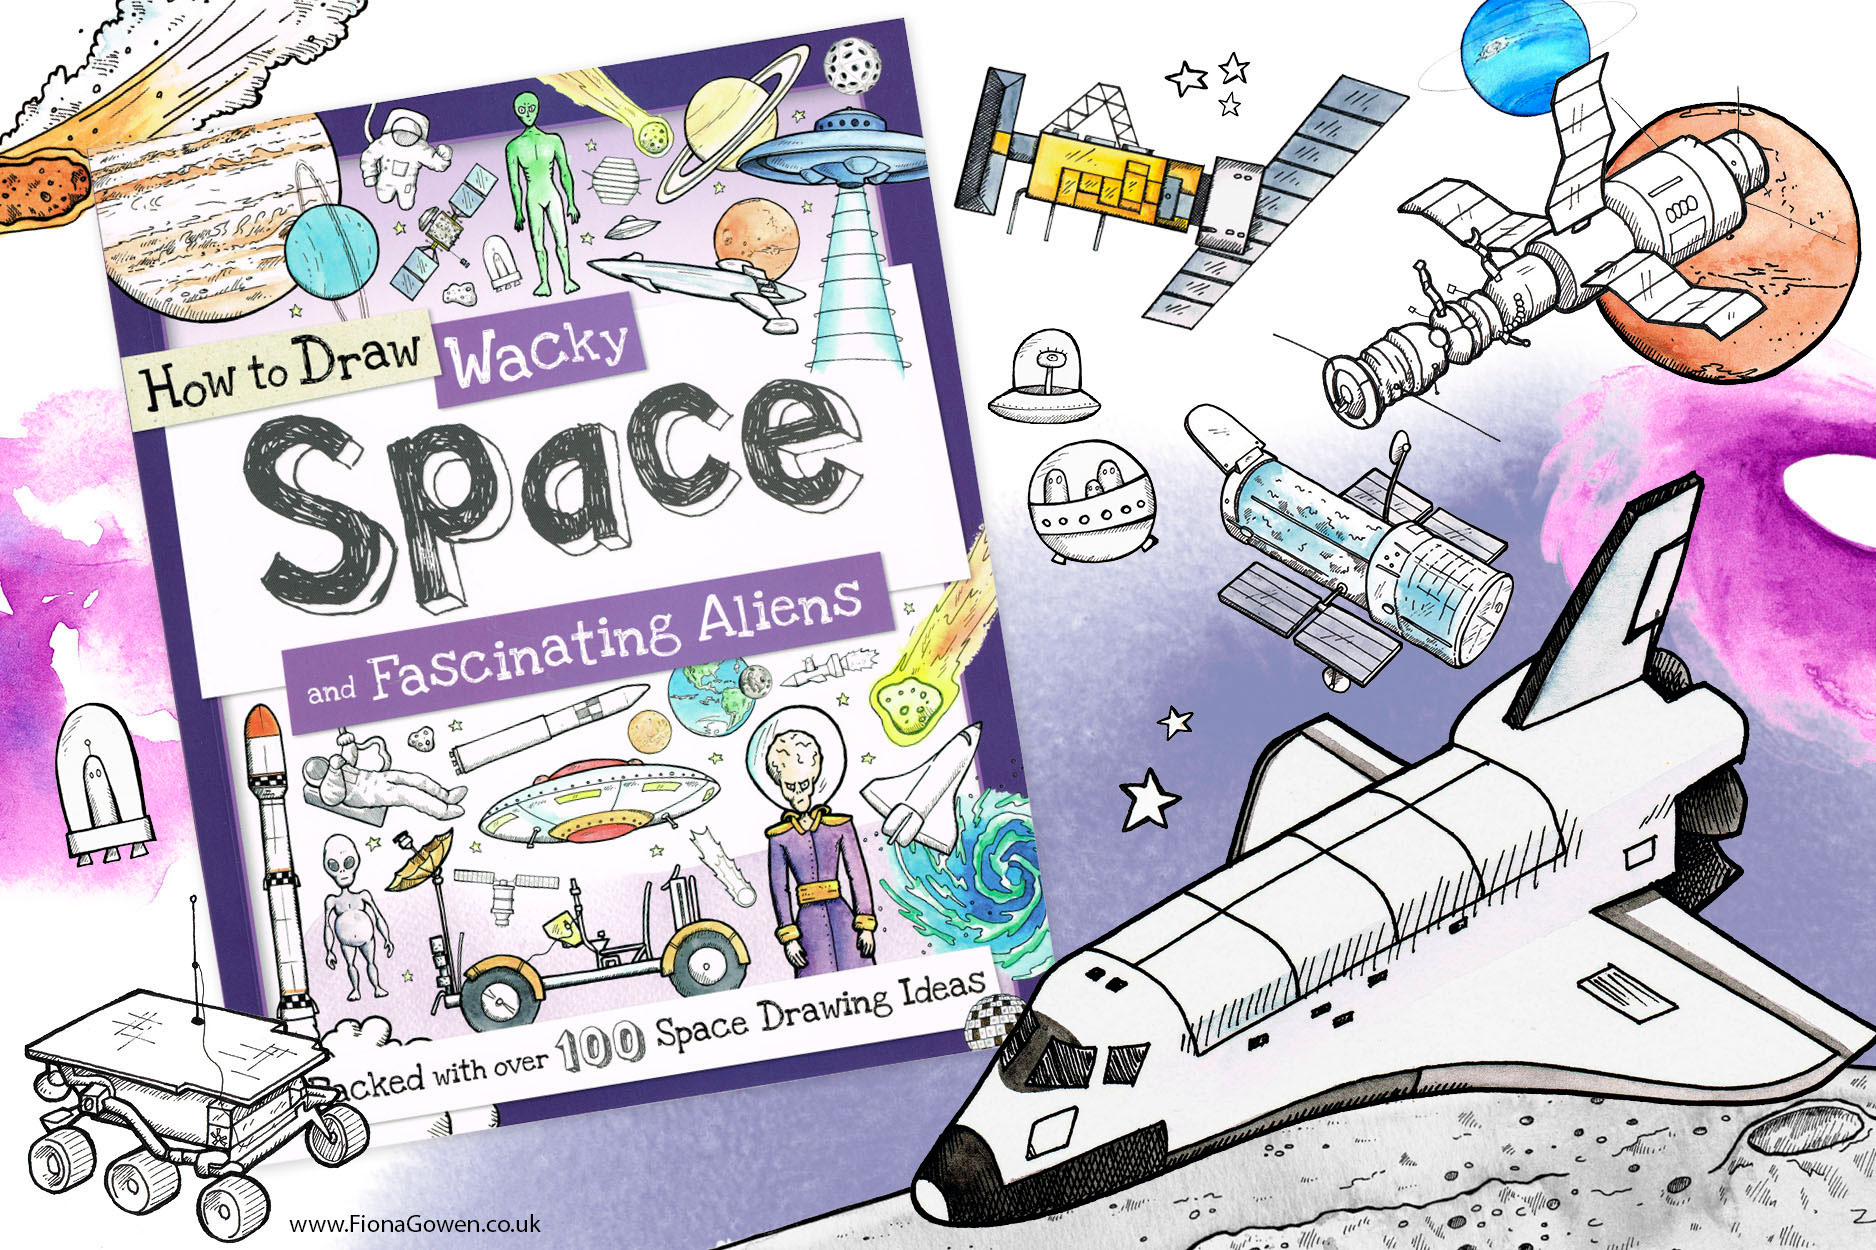 How to Draw Space Childrens book illustrated by Fiona Gowen. Featuring the Space shuttle, Mars Rovers, Hubble, aliens and space stations